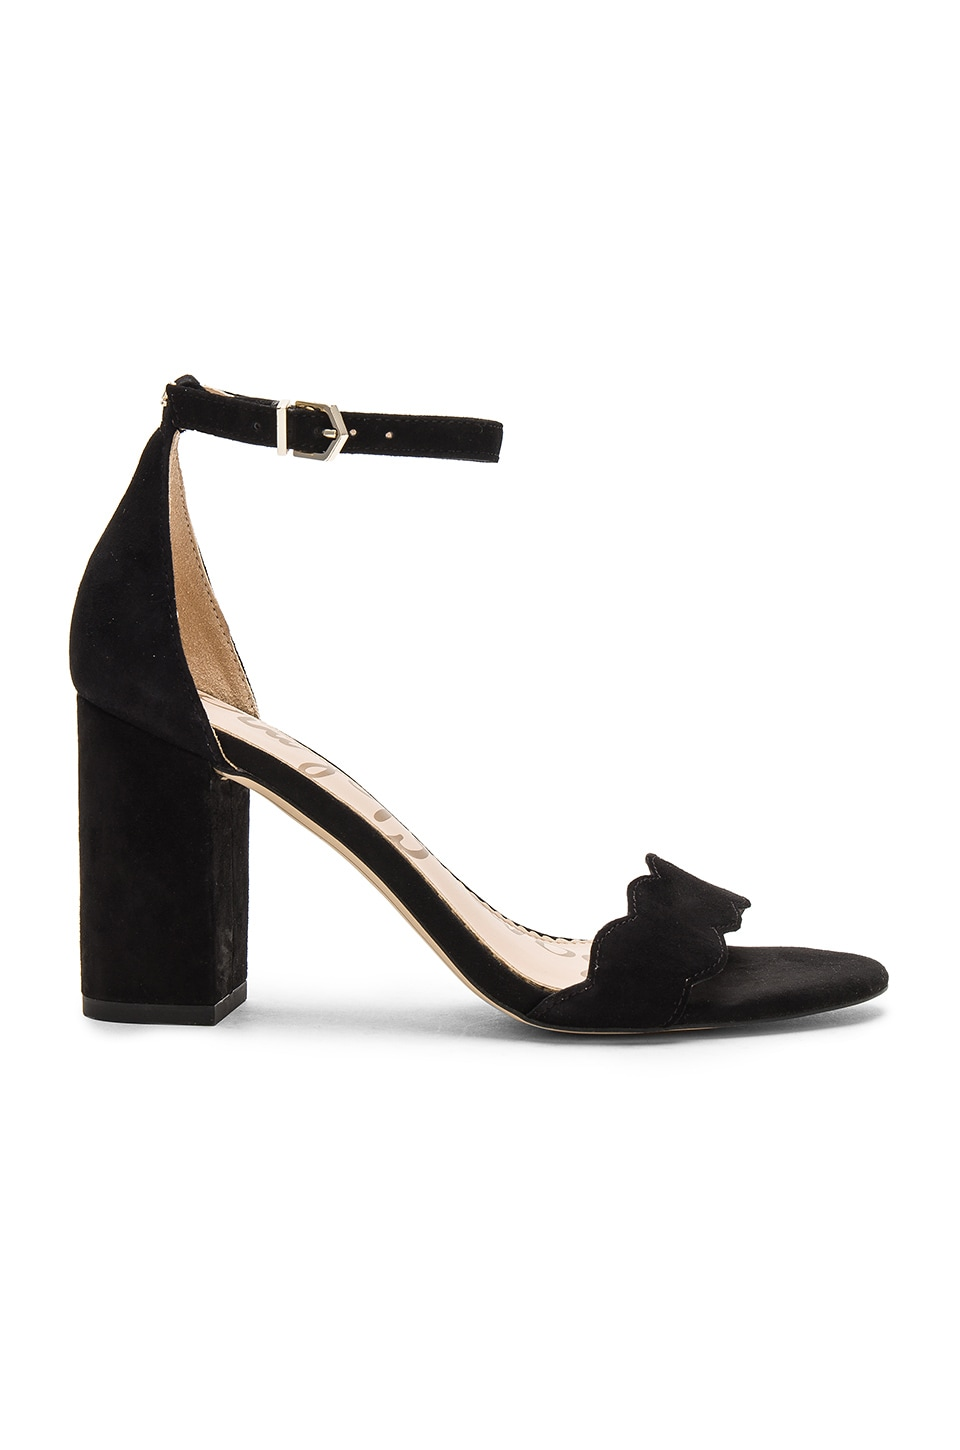 Sam Edelman Odila Heel in Black Suede